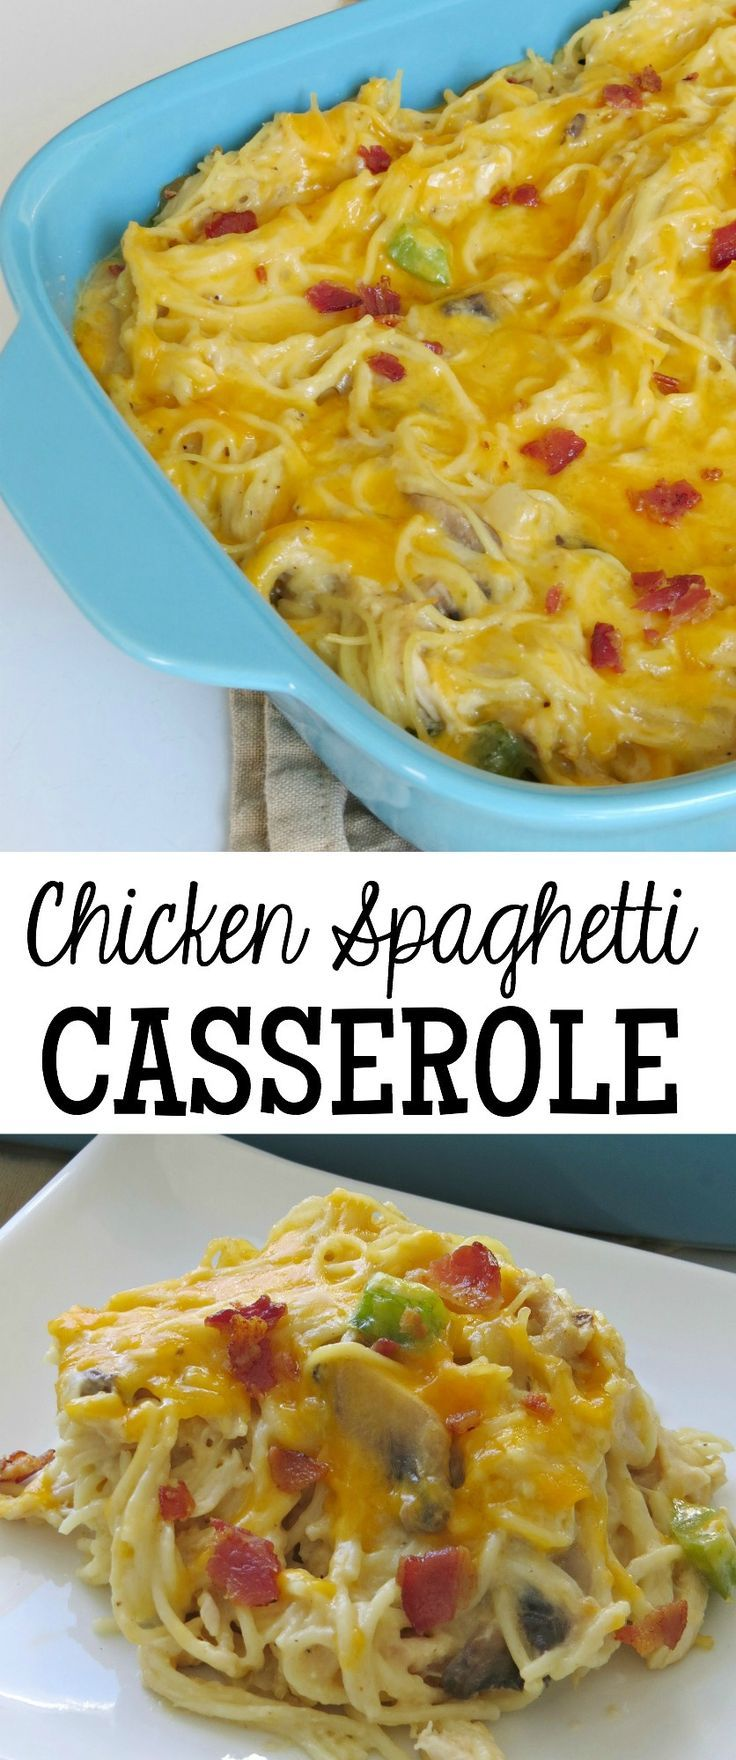 This Chicken Spaghetti Casserole recipe is a great meal idea for busy weeknights. It's an easy one that's delicious!